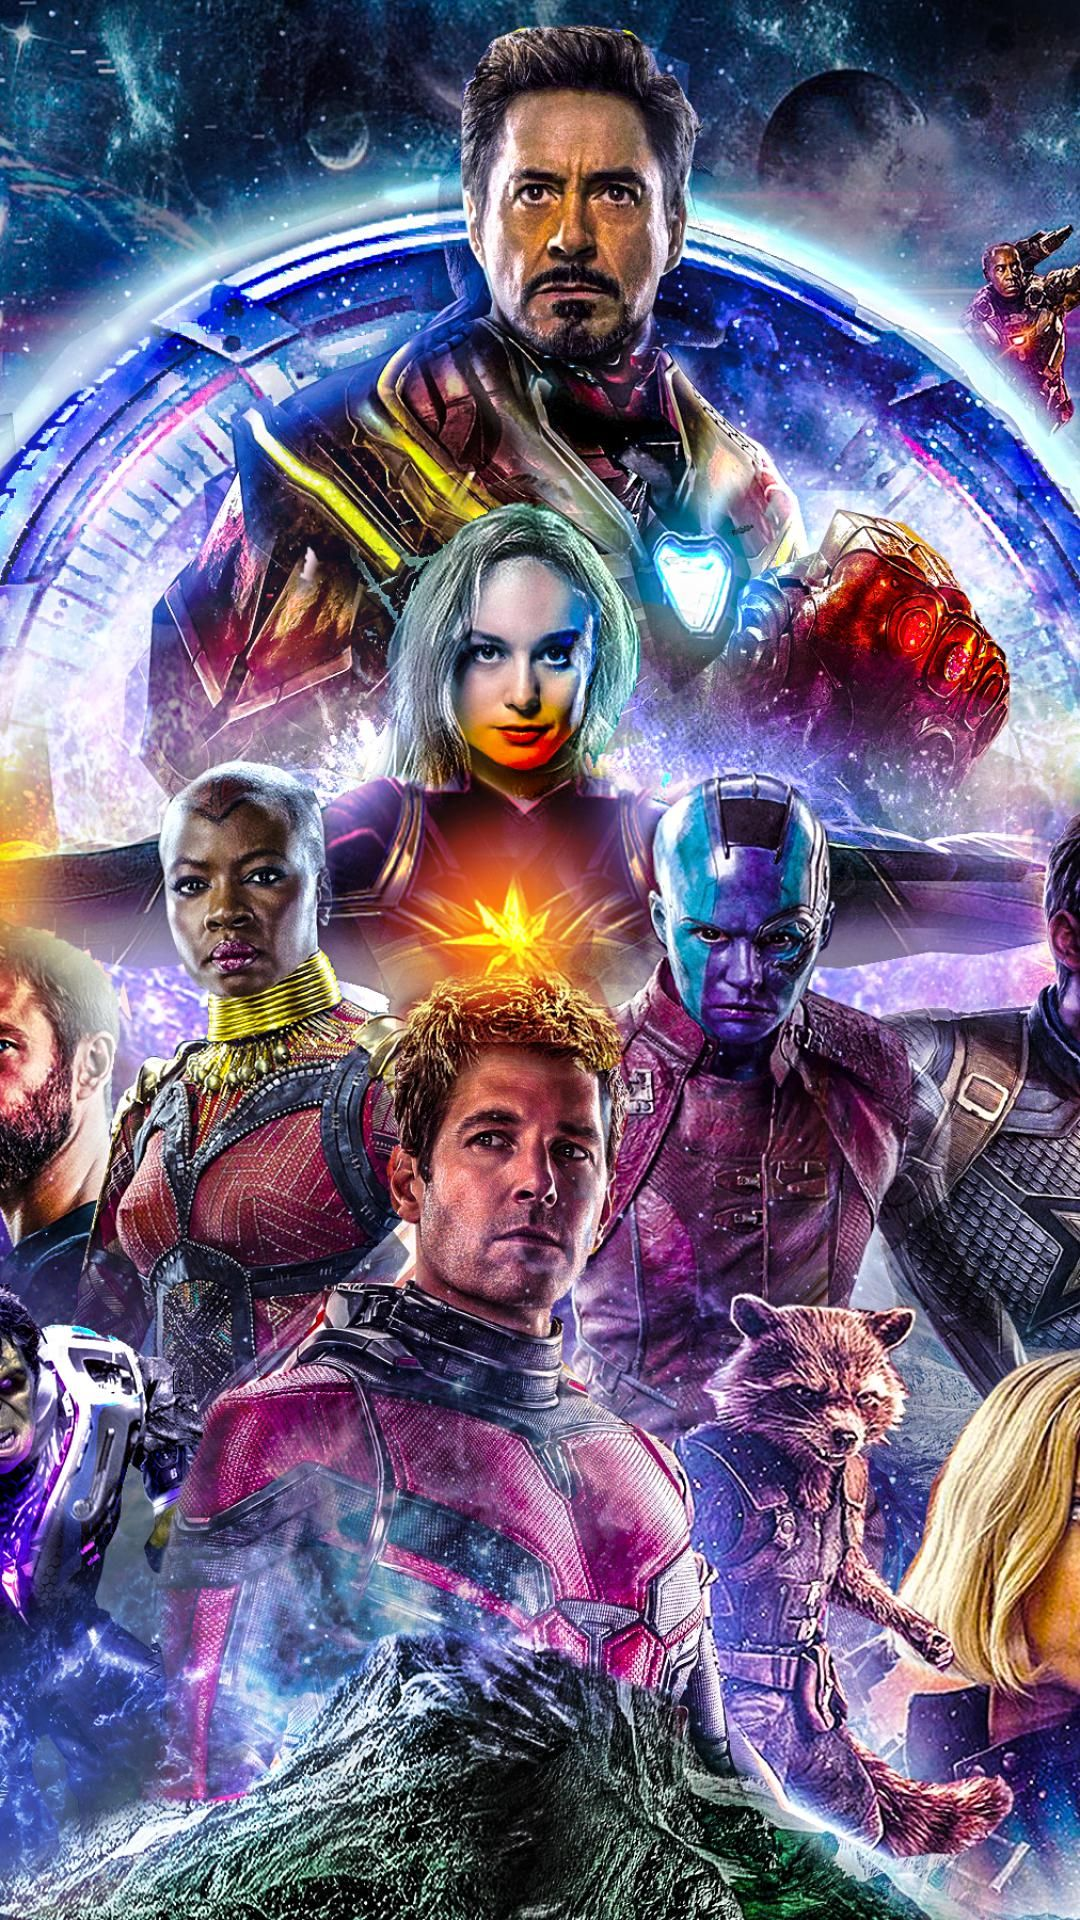 Avengers Endgame 2019 Wallpapers for mobile phones